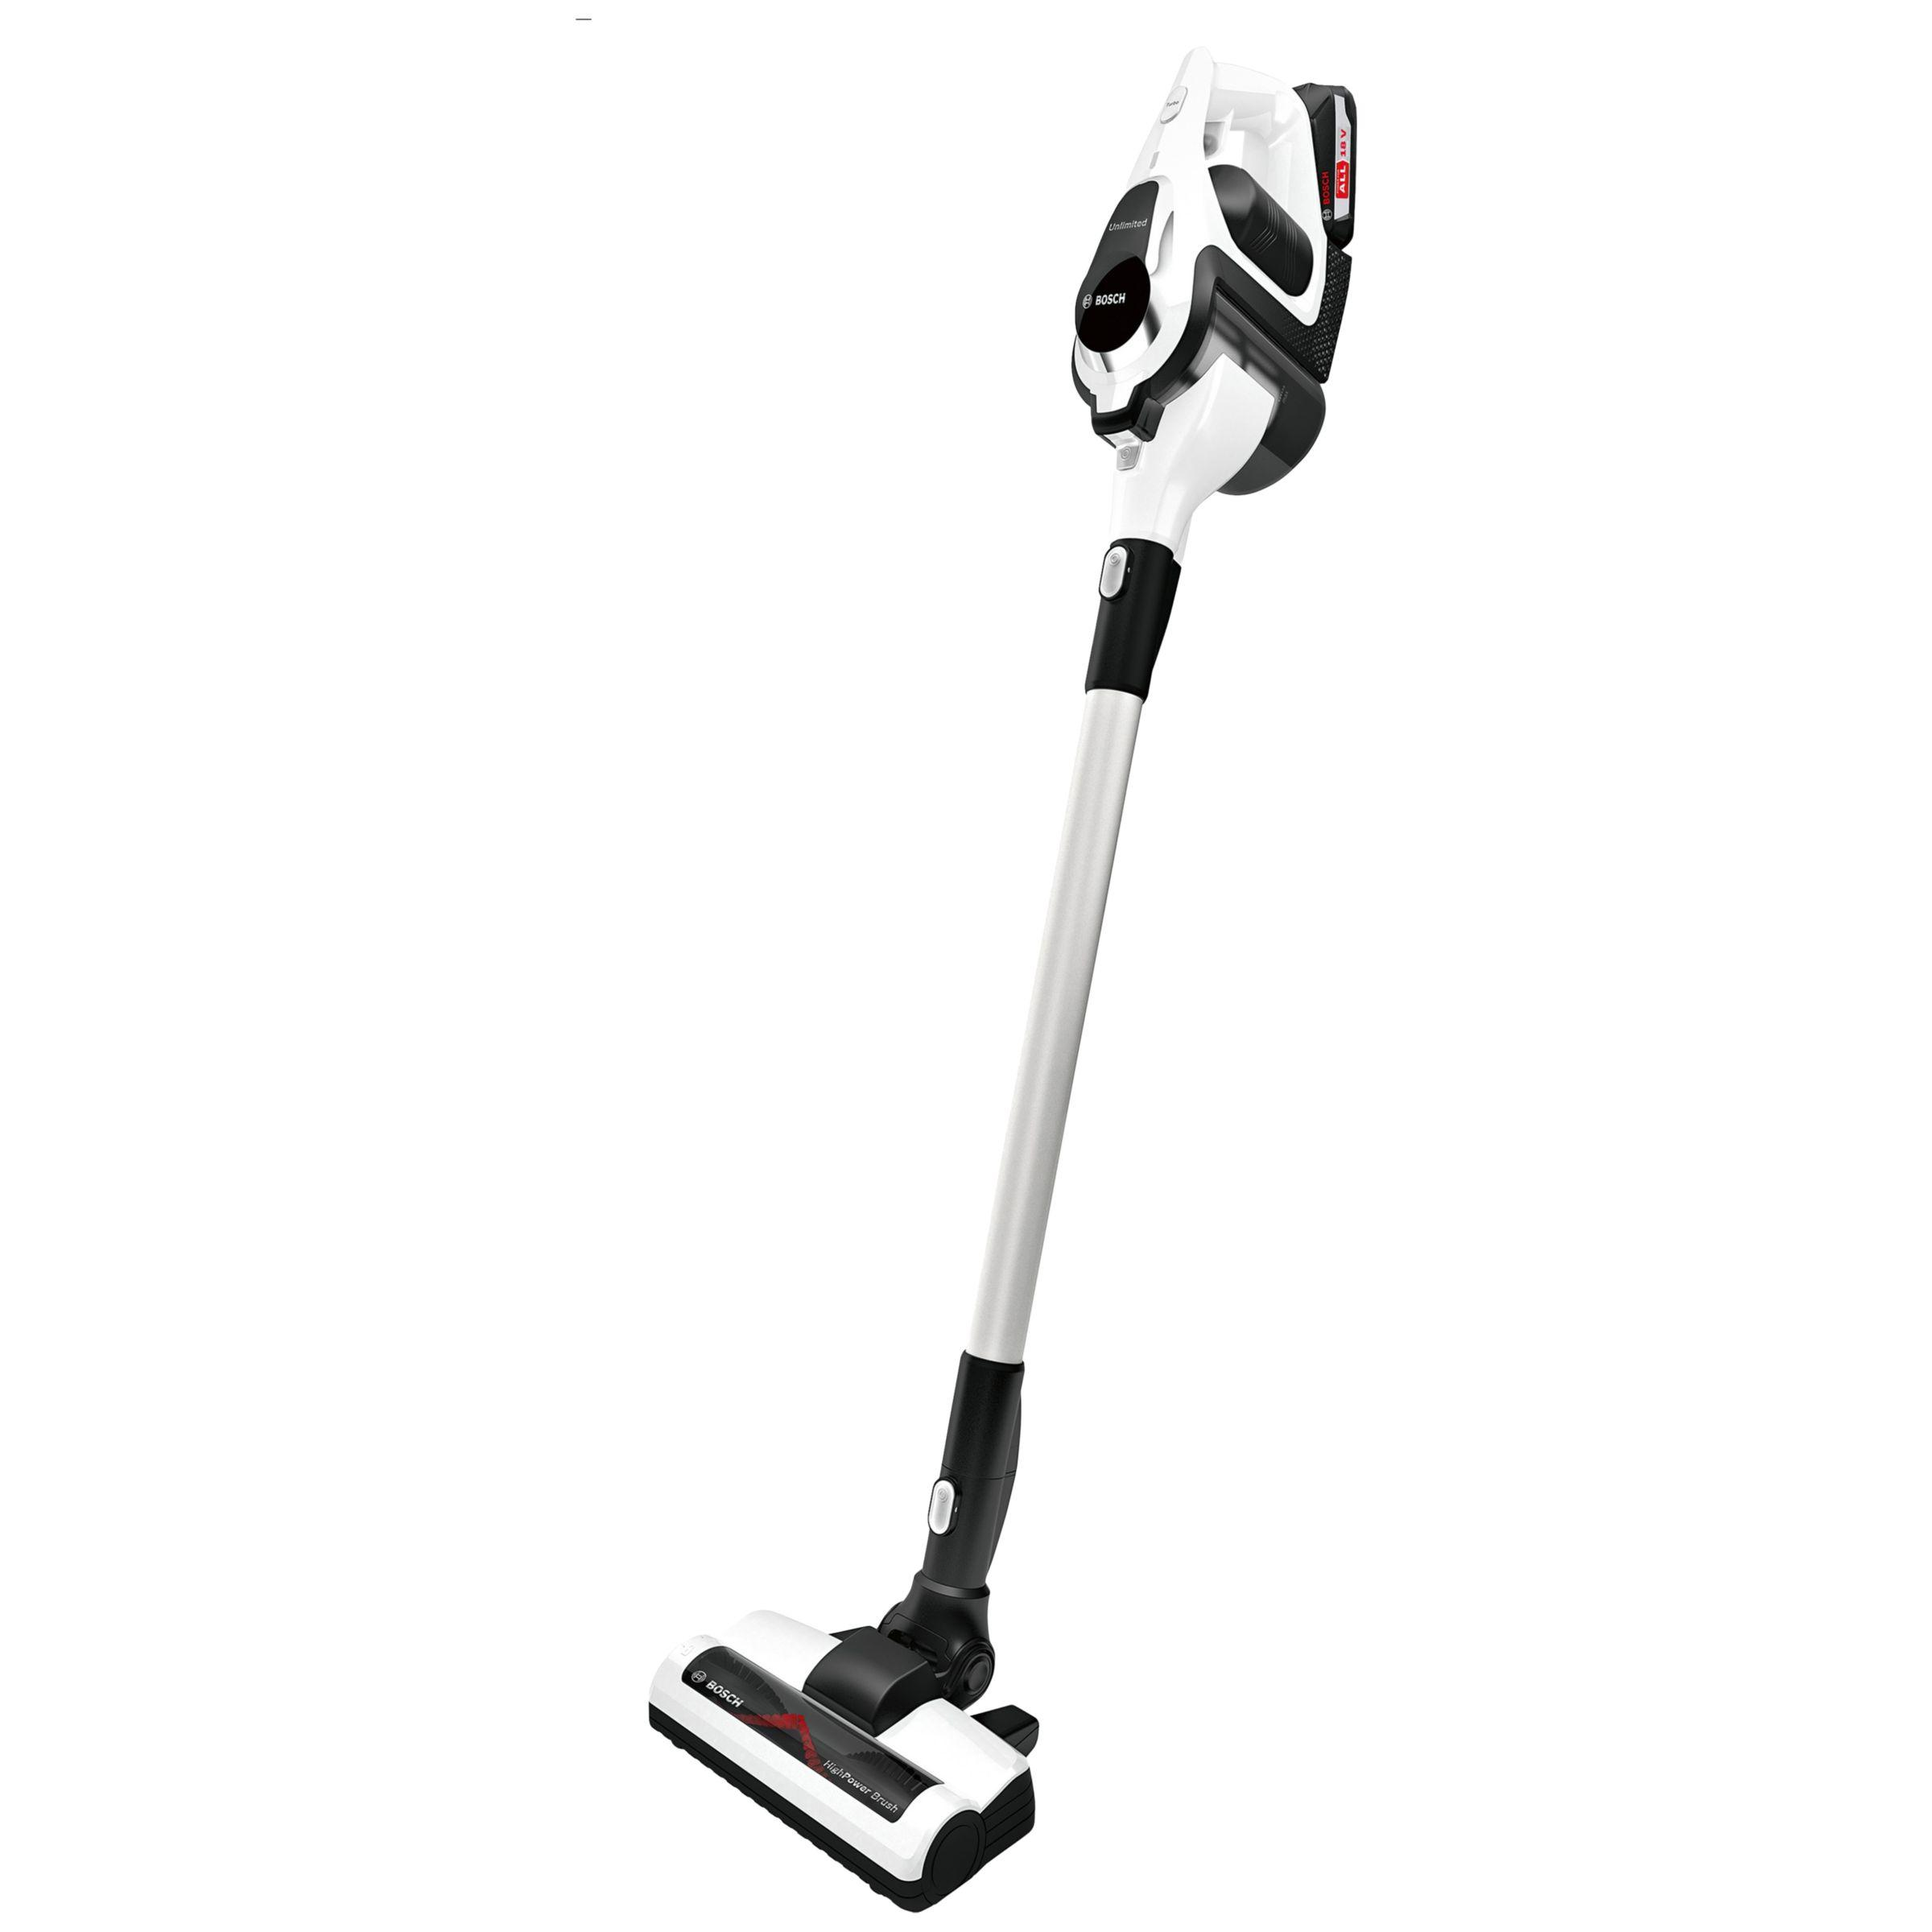 Image of Unlimited BCS122GB Cordless Upright Stick Vacuum Cleaner